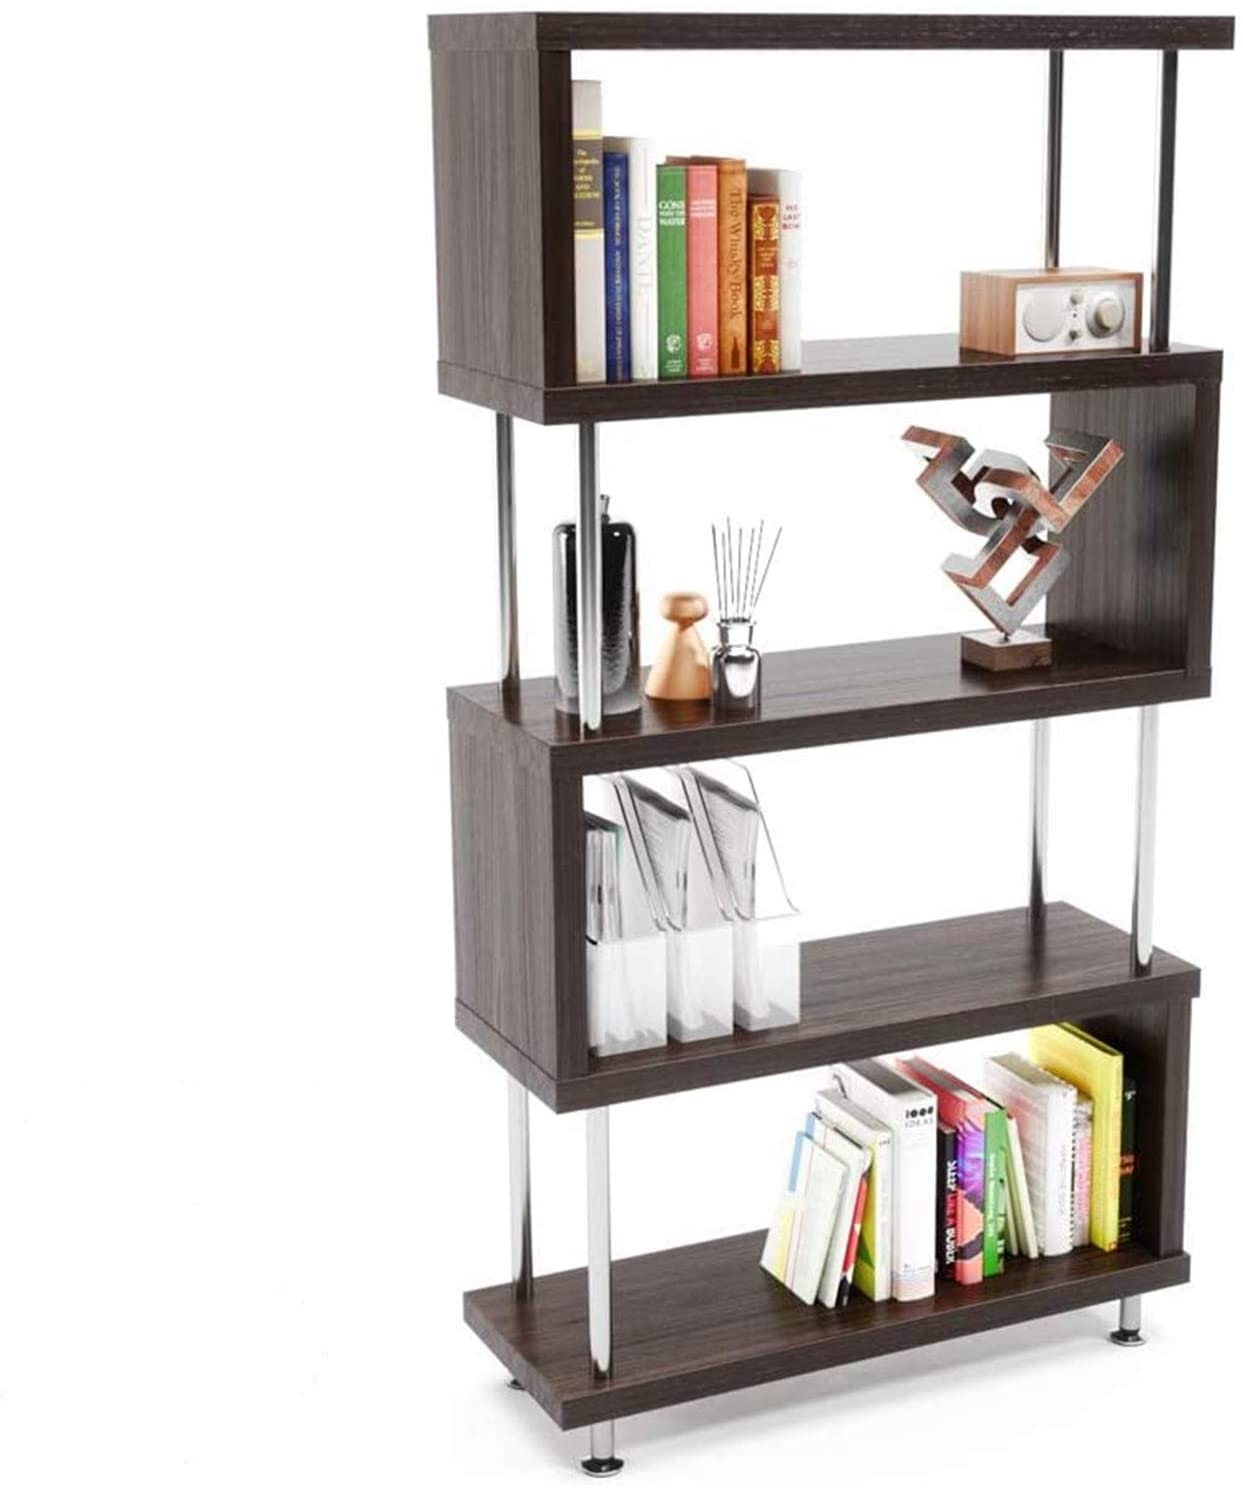 IHADA S-Shaped 5 Shelf Bookcase, Wooden Z Shaped 5-Tier Vintage Industrial Etagere Bookshelf Stand (Brown) Classic Rack Unit - Home, Office Storage